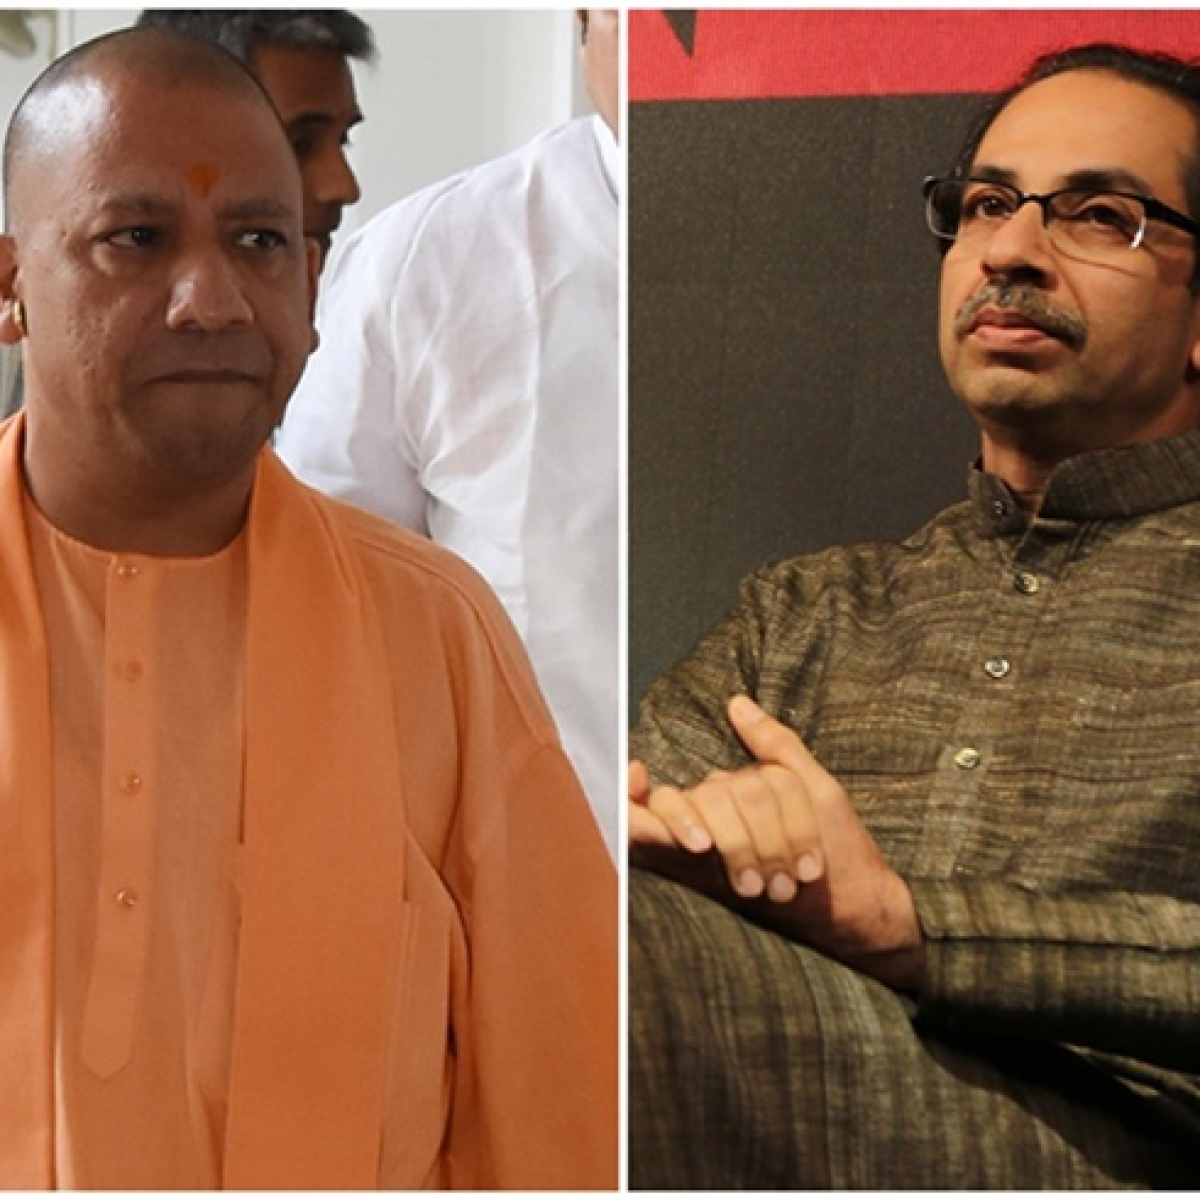 Bulandshahr Sadhu Murders: Uddhav Thackeray speaks to Yogi Adityanath; tells him to take quick action like Maha Govt did during Palghar Sadhu lynchings